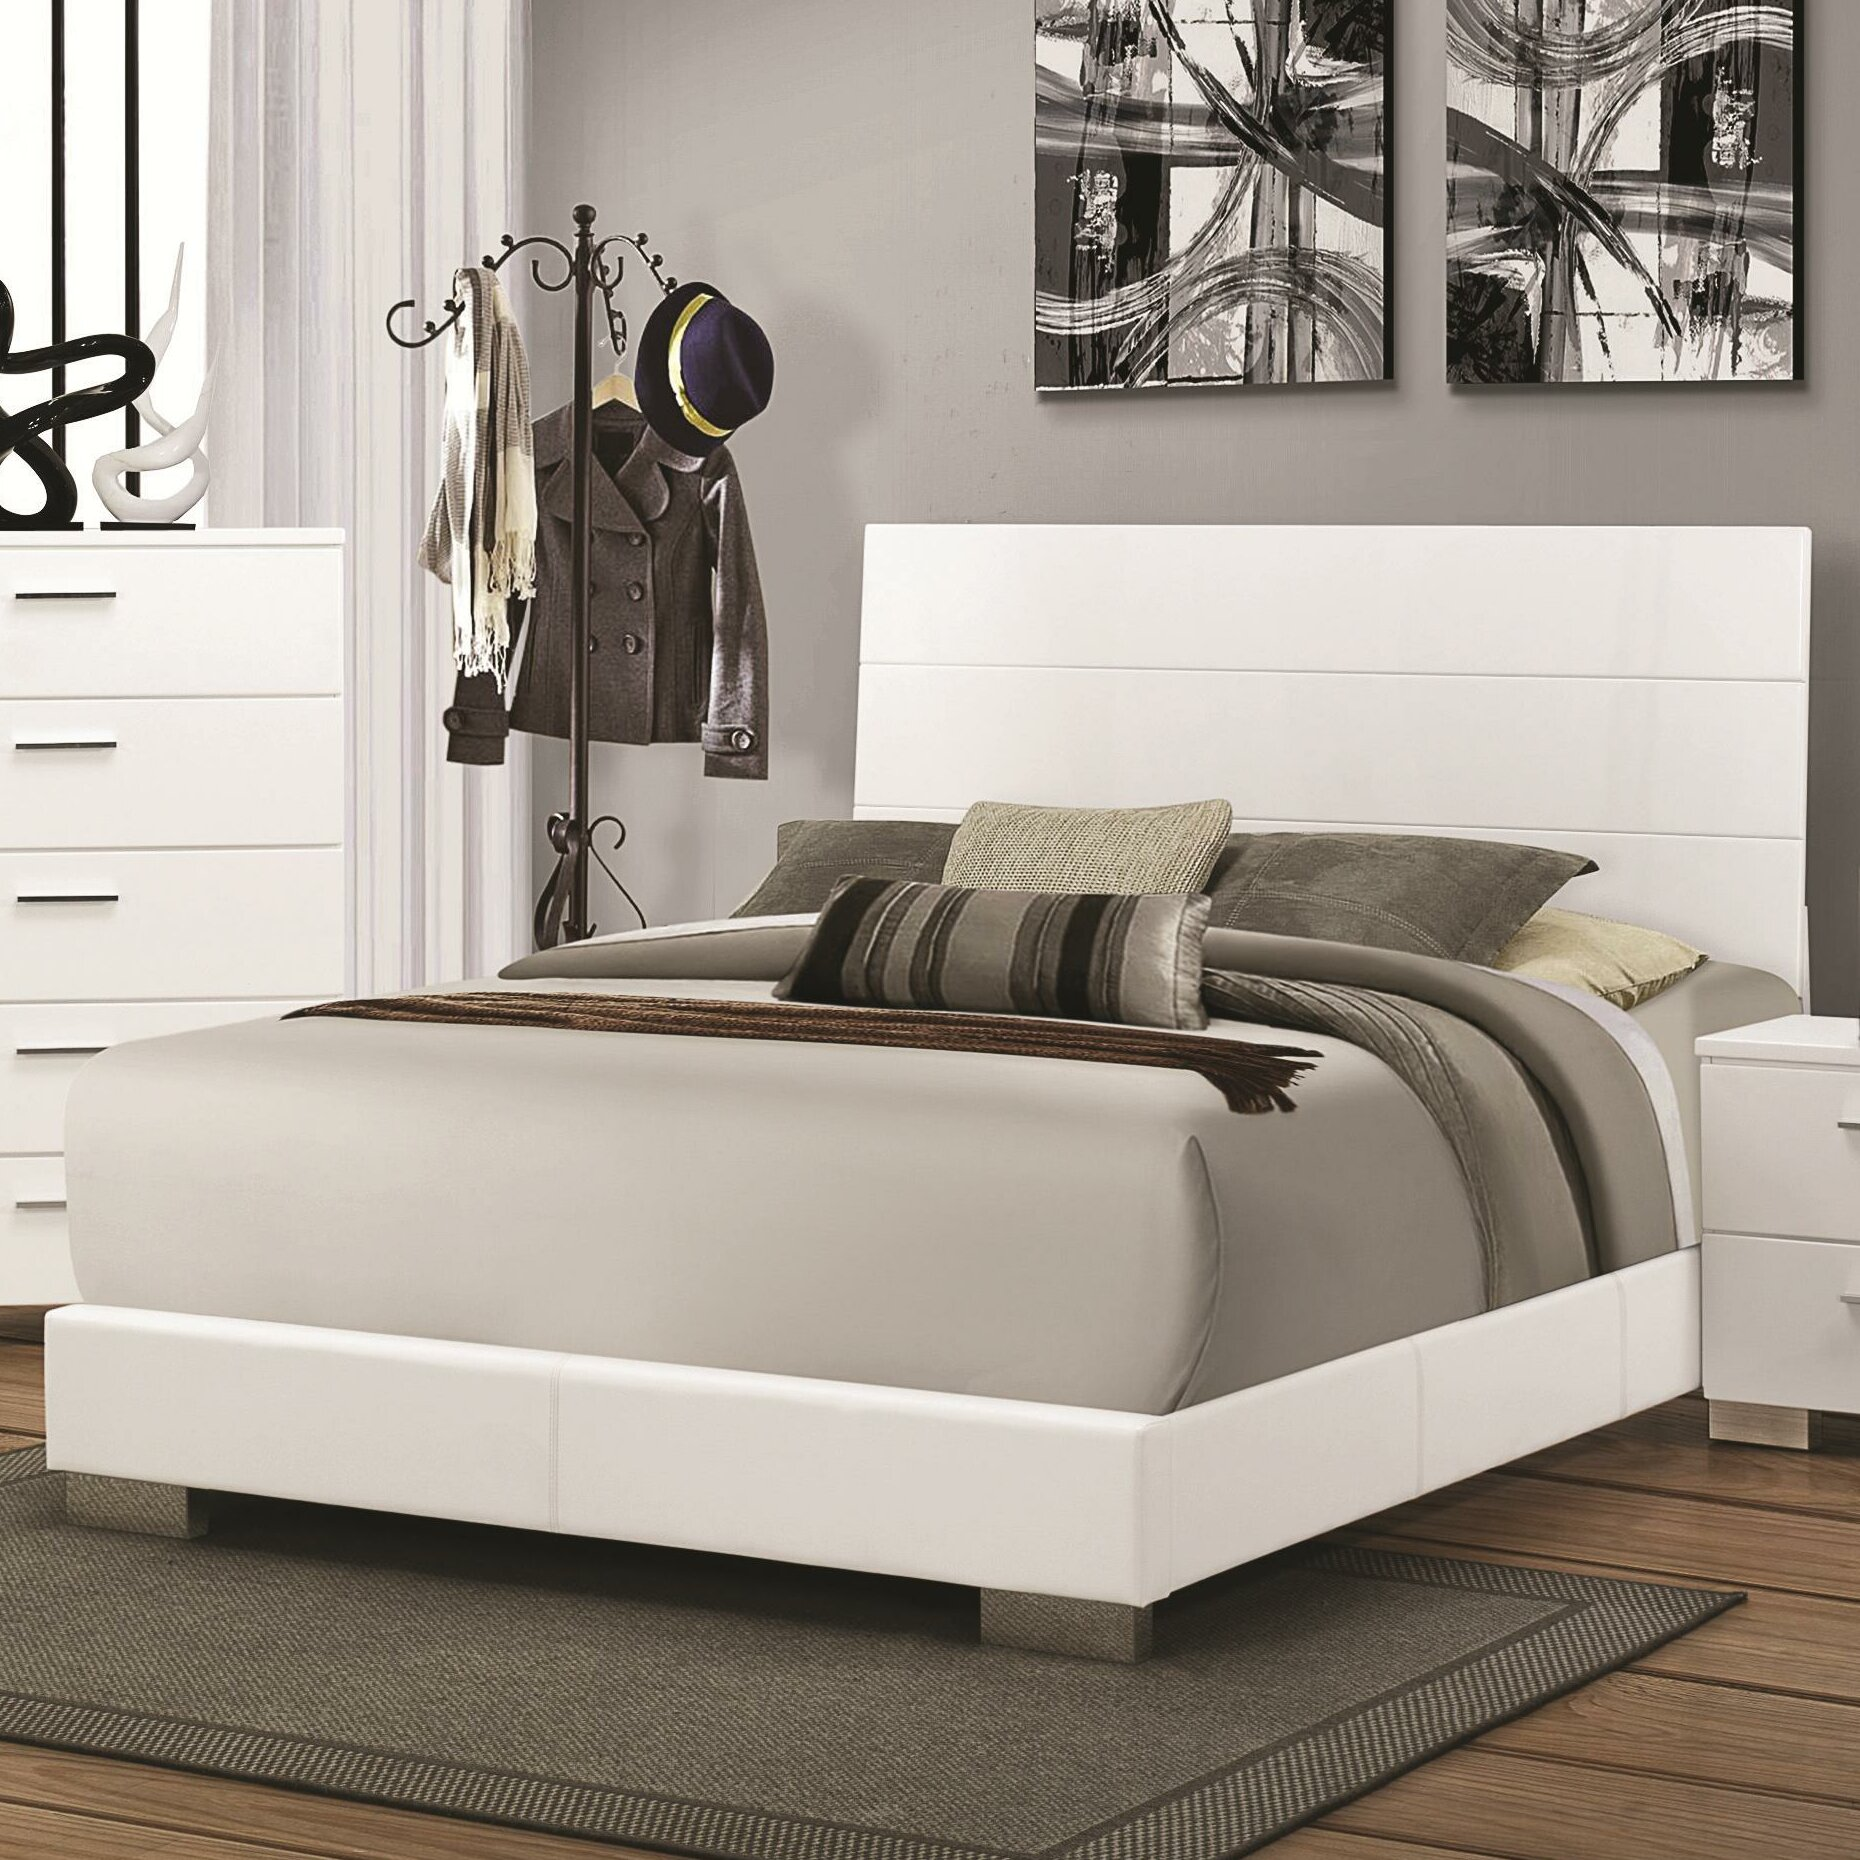 Wildon Home Panel Bed Reviews Wayfair